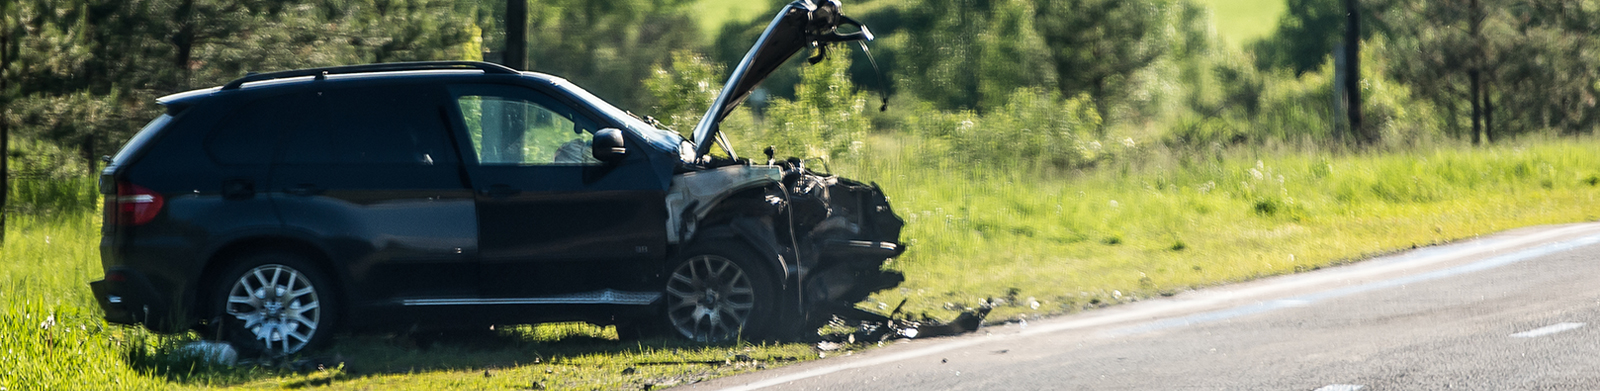 The Strong Connection Between Overconfidence & Car Accidents